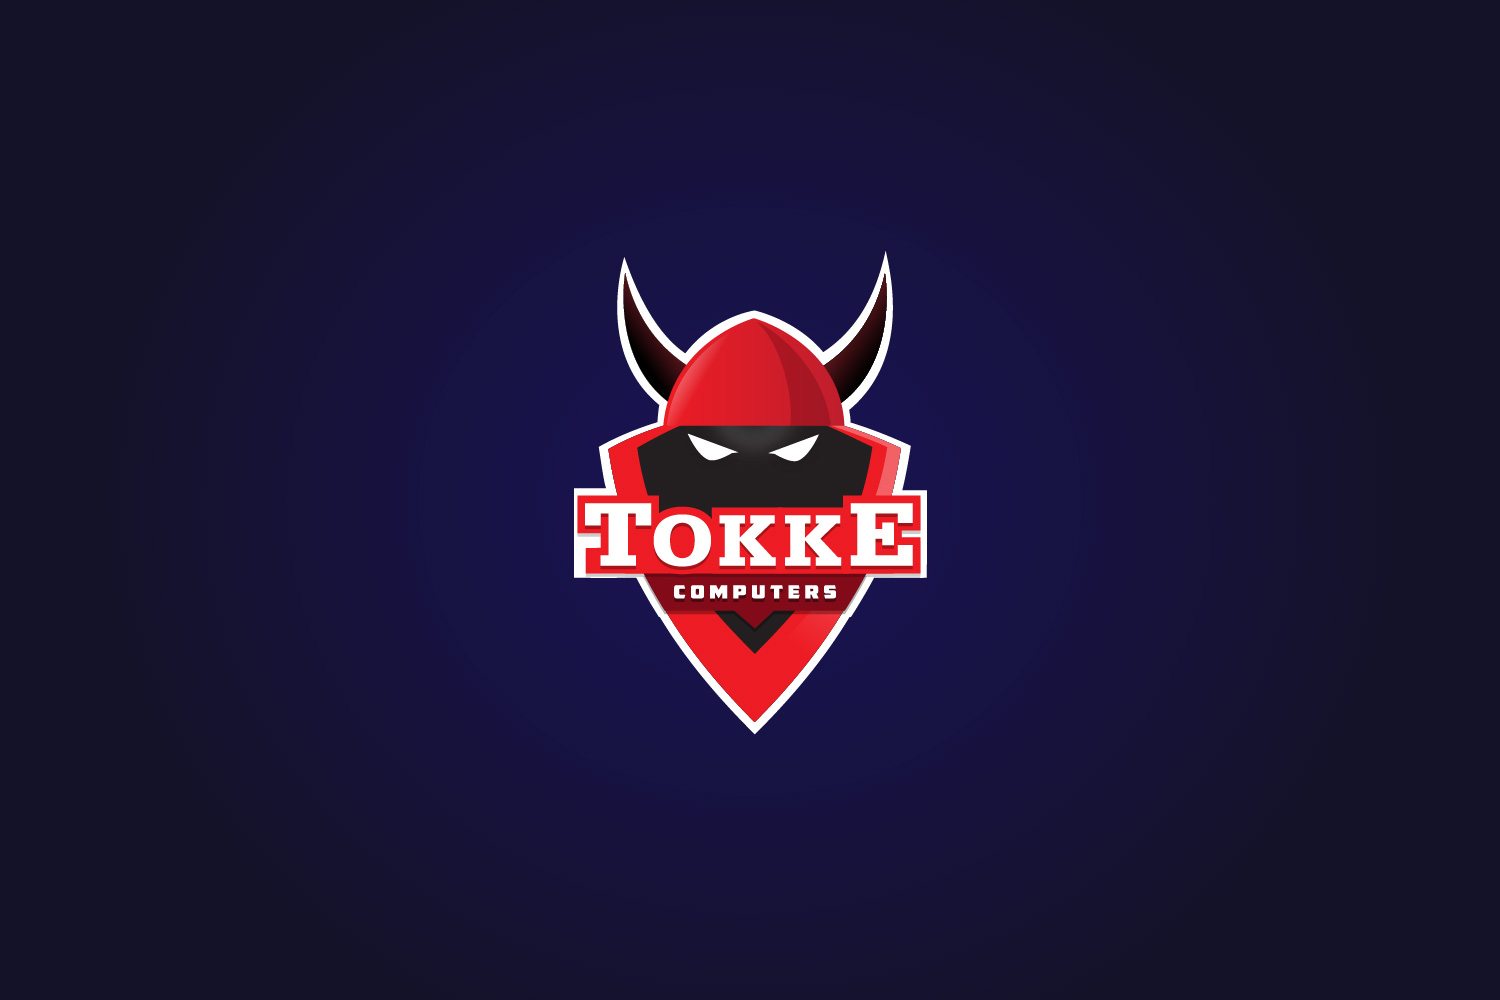 Tokke Computers Gaming Cafe